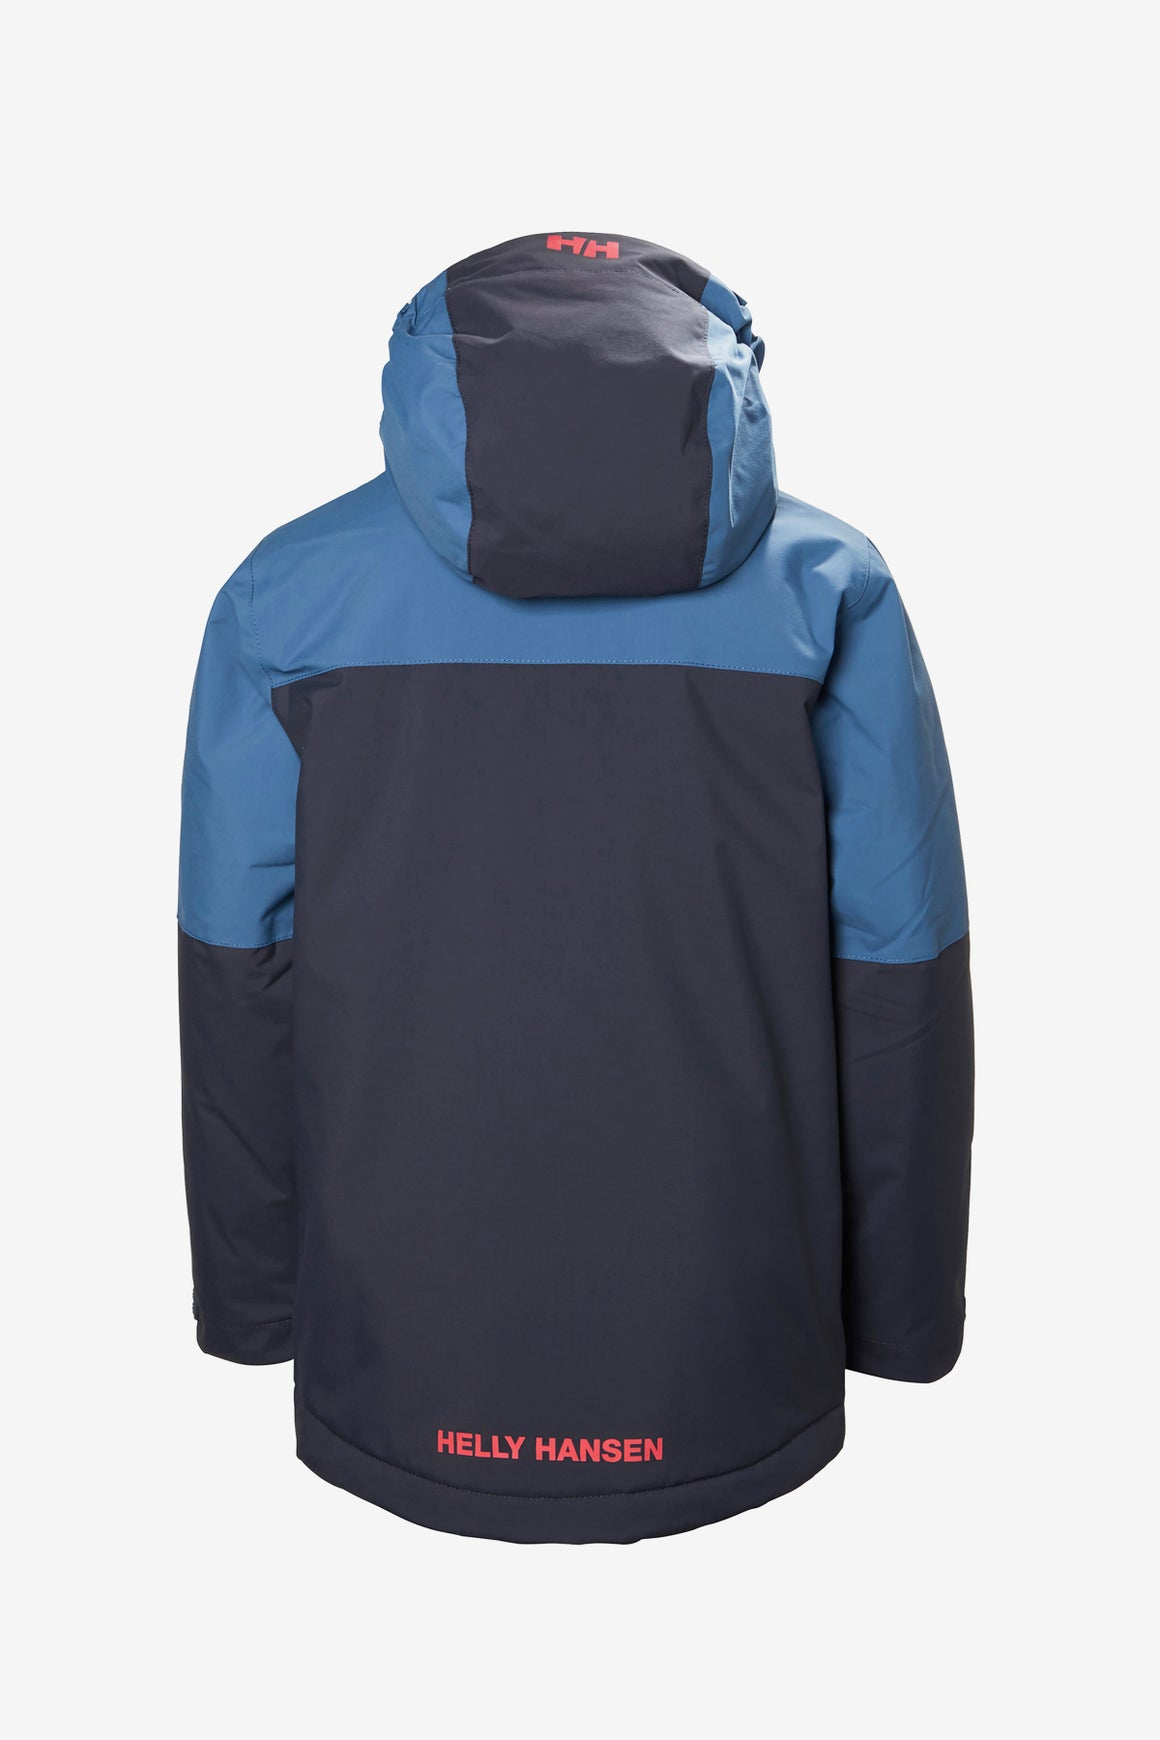 Helly Hansen Jr Progress Jacket - Graphite Blue